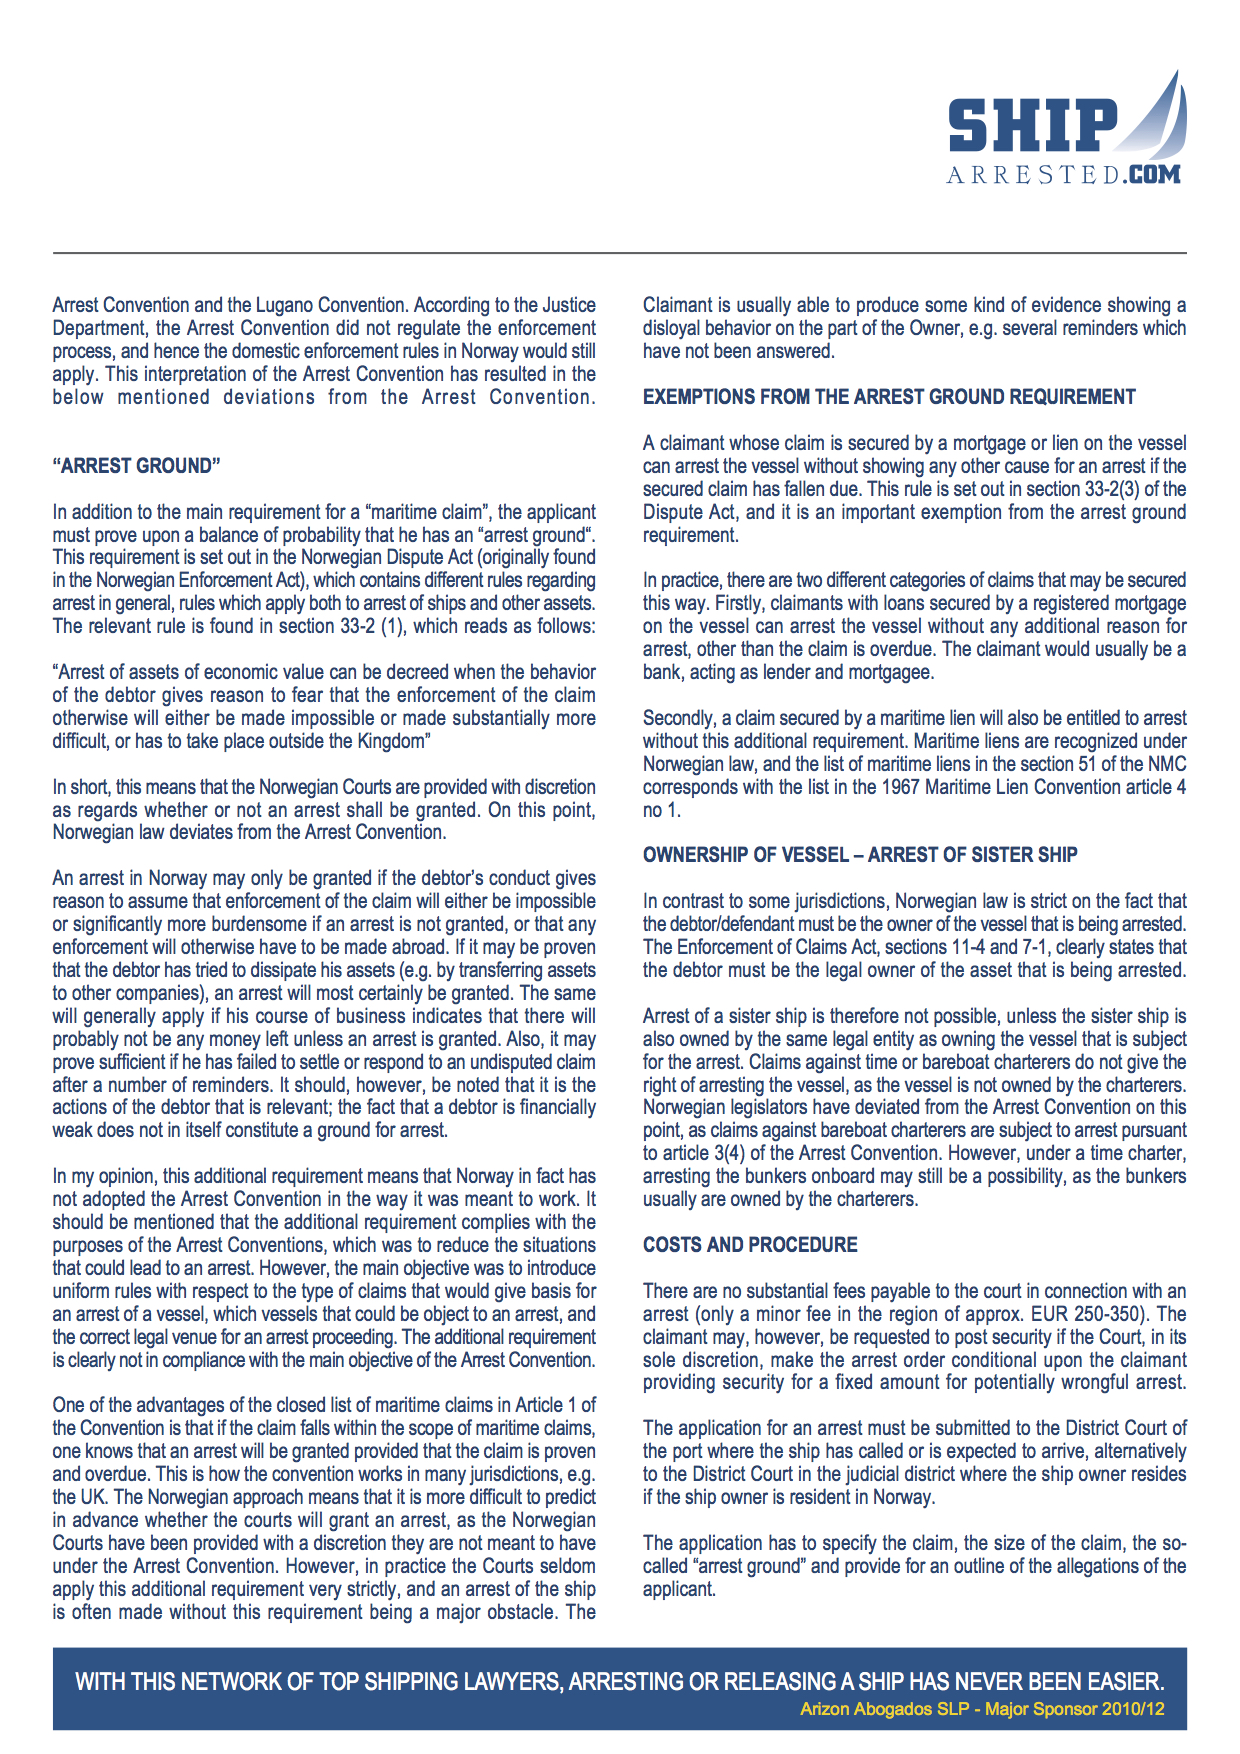 The-Arrest-news-Issue1-page4